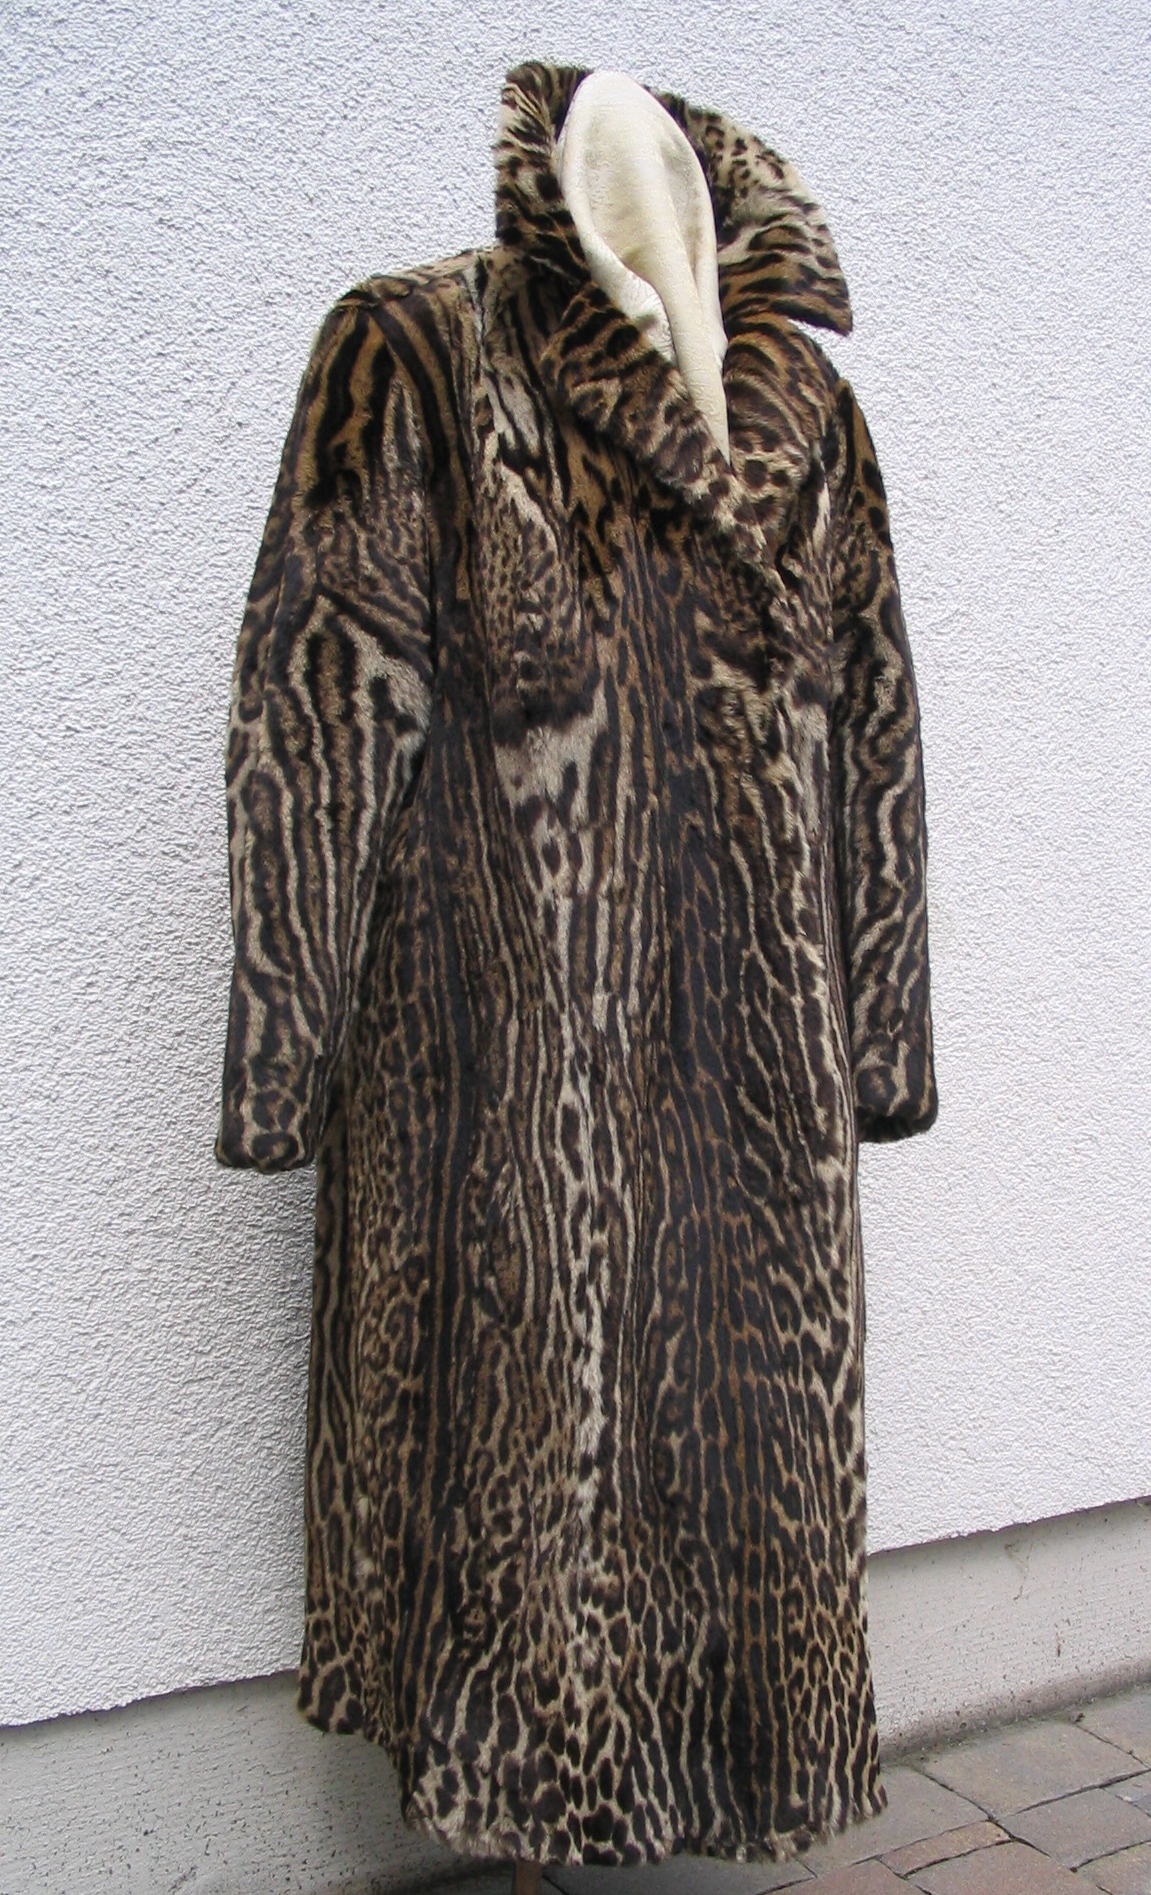 File:Ocelot fur coat, frontside.JPG - Wikimedia Commons